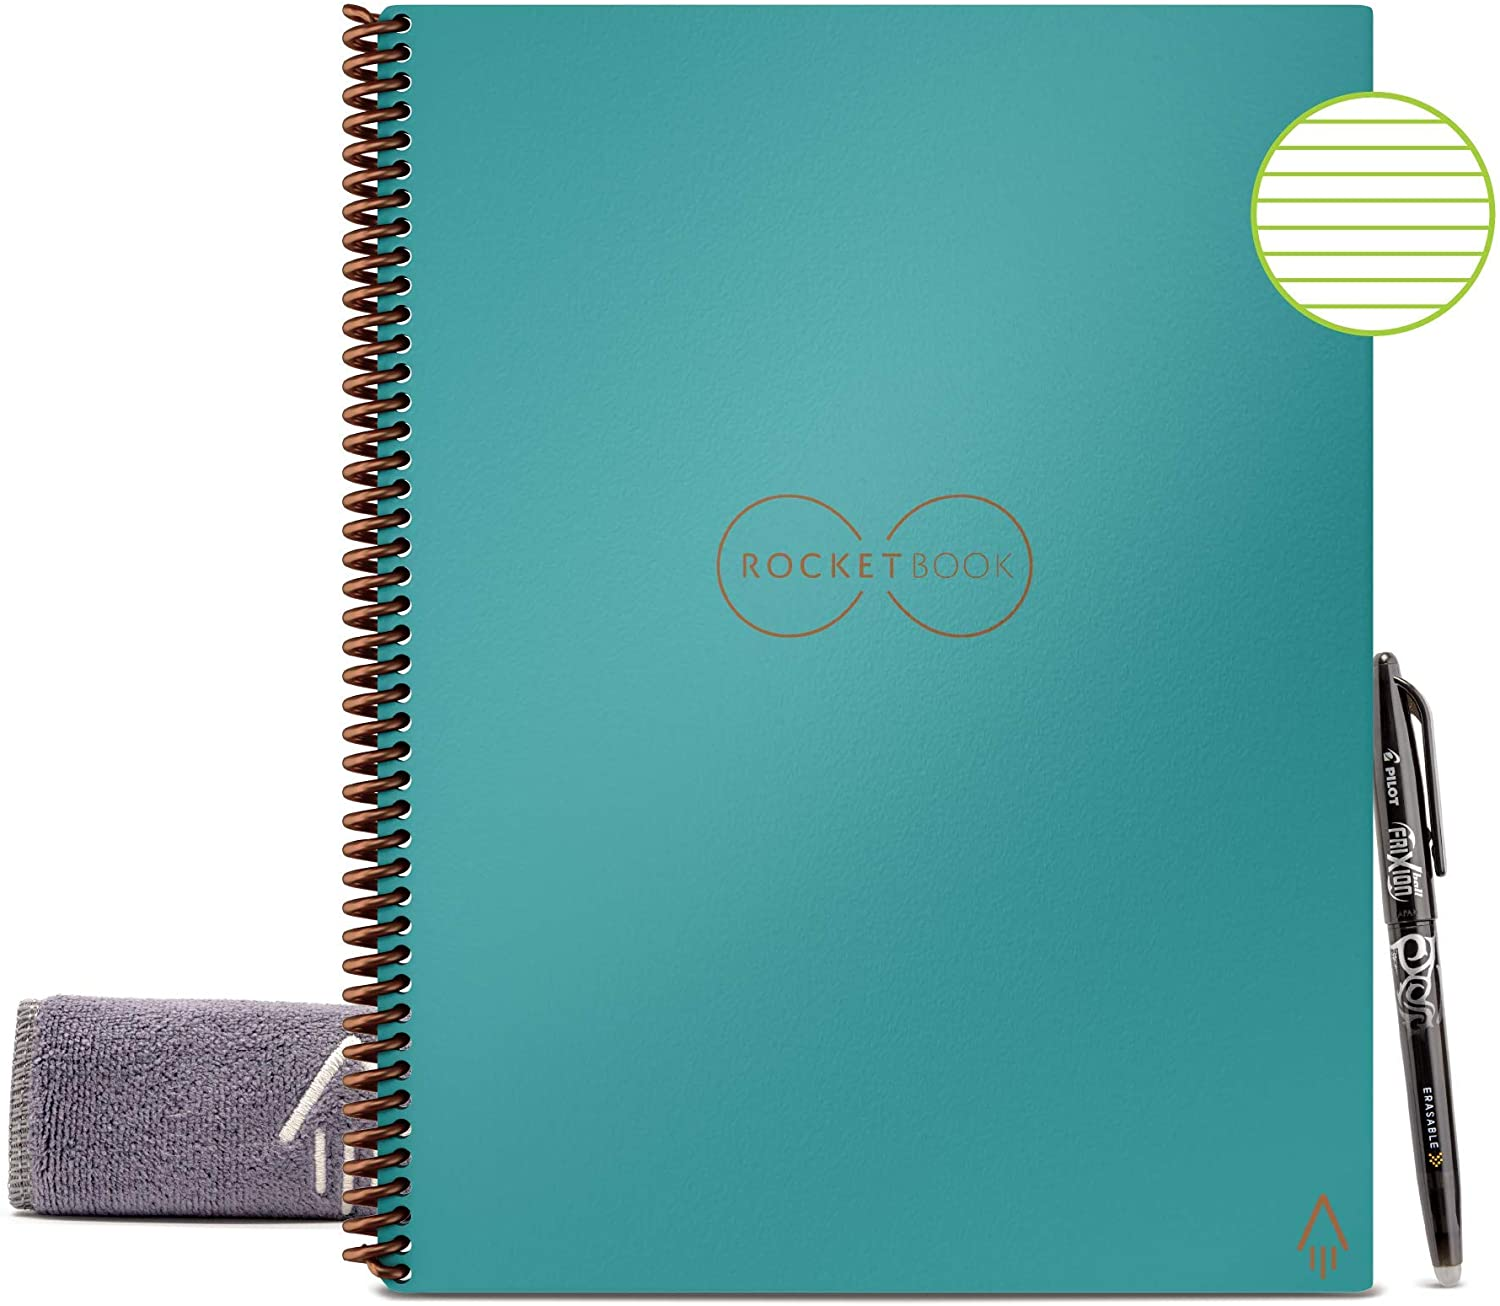 Online Smart Notebook